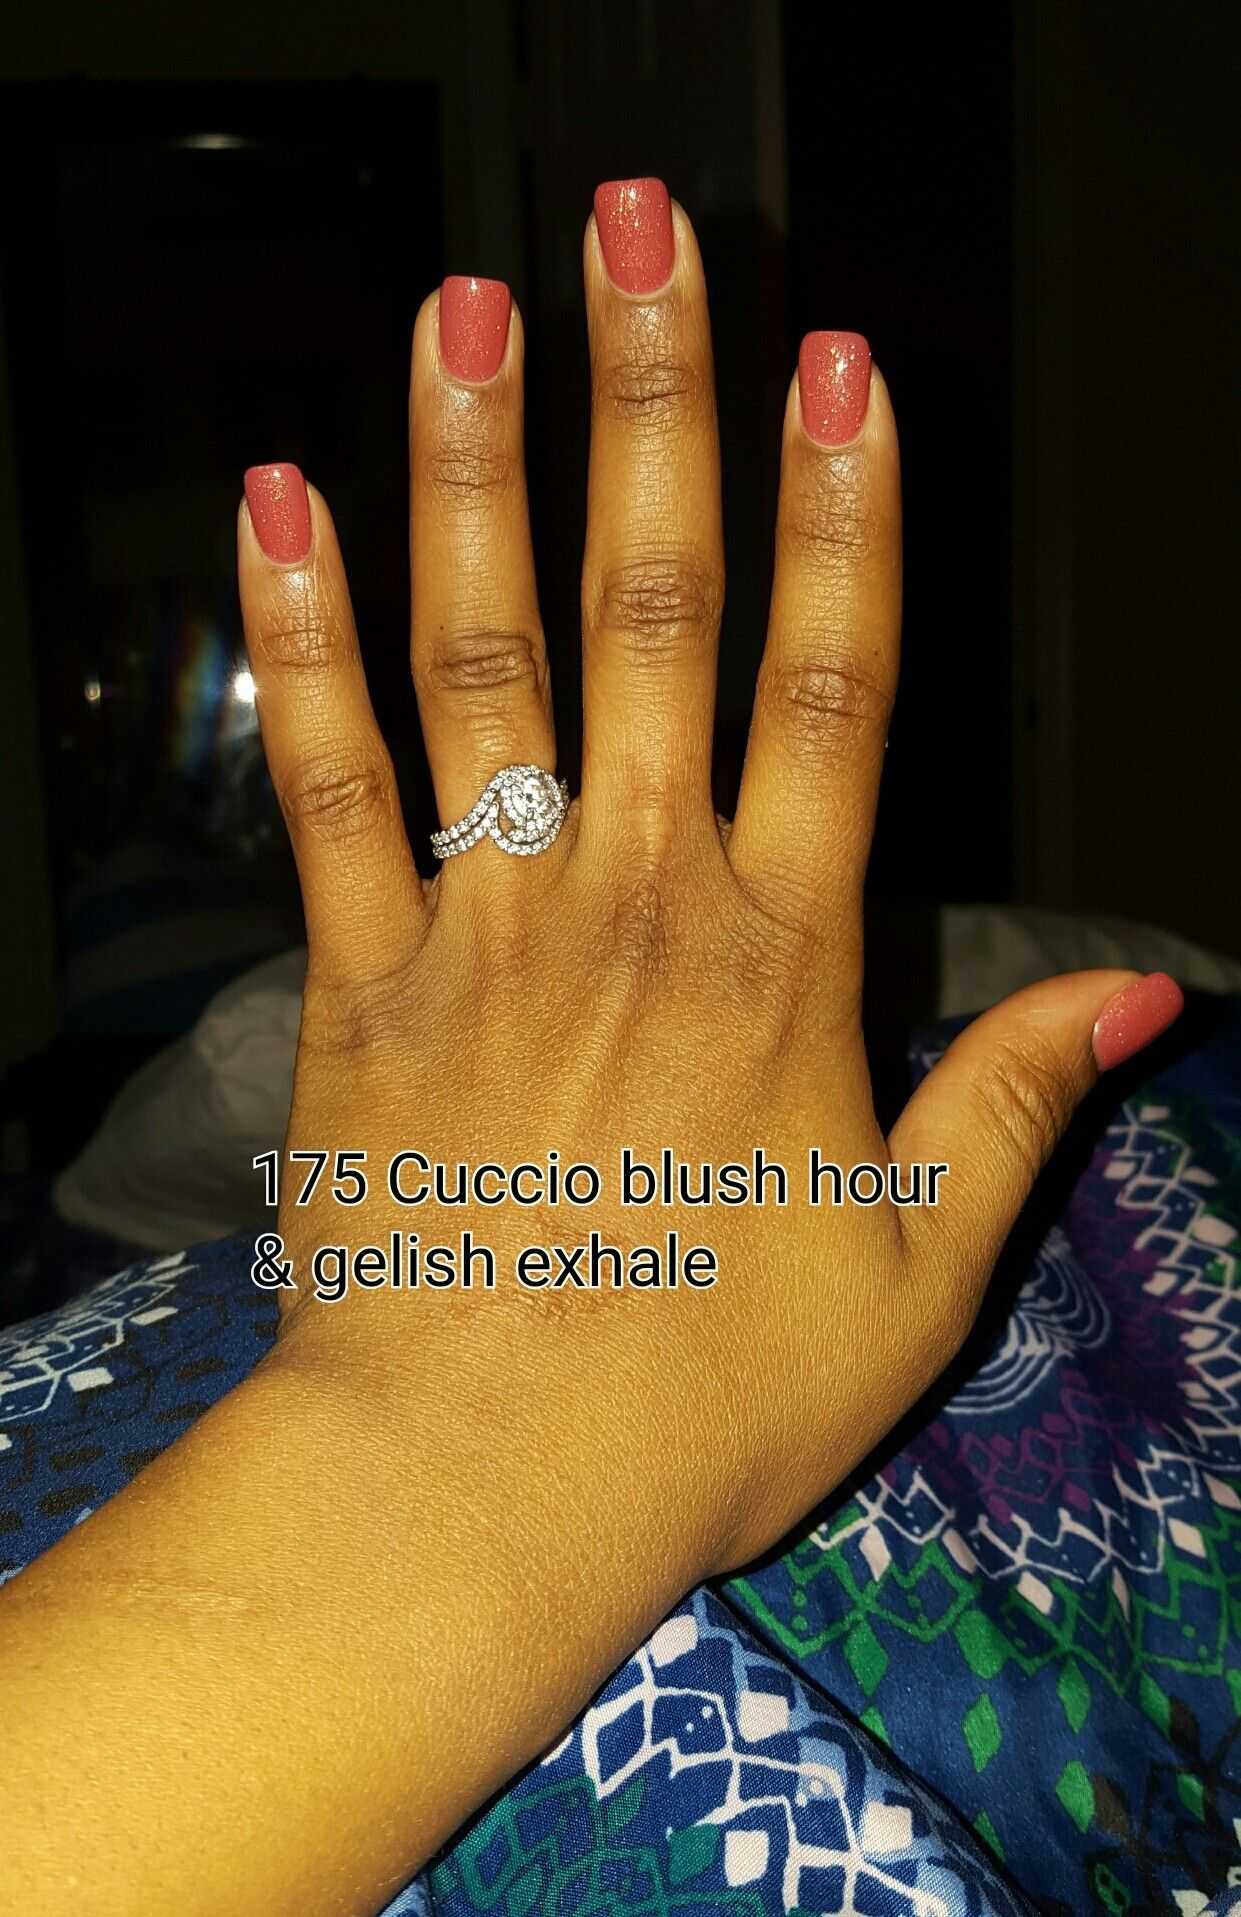 Pin by Suze Kiflezghi on Nail color on brown, black skin | Pinterest